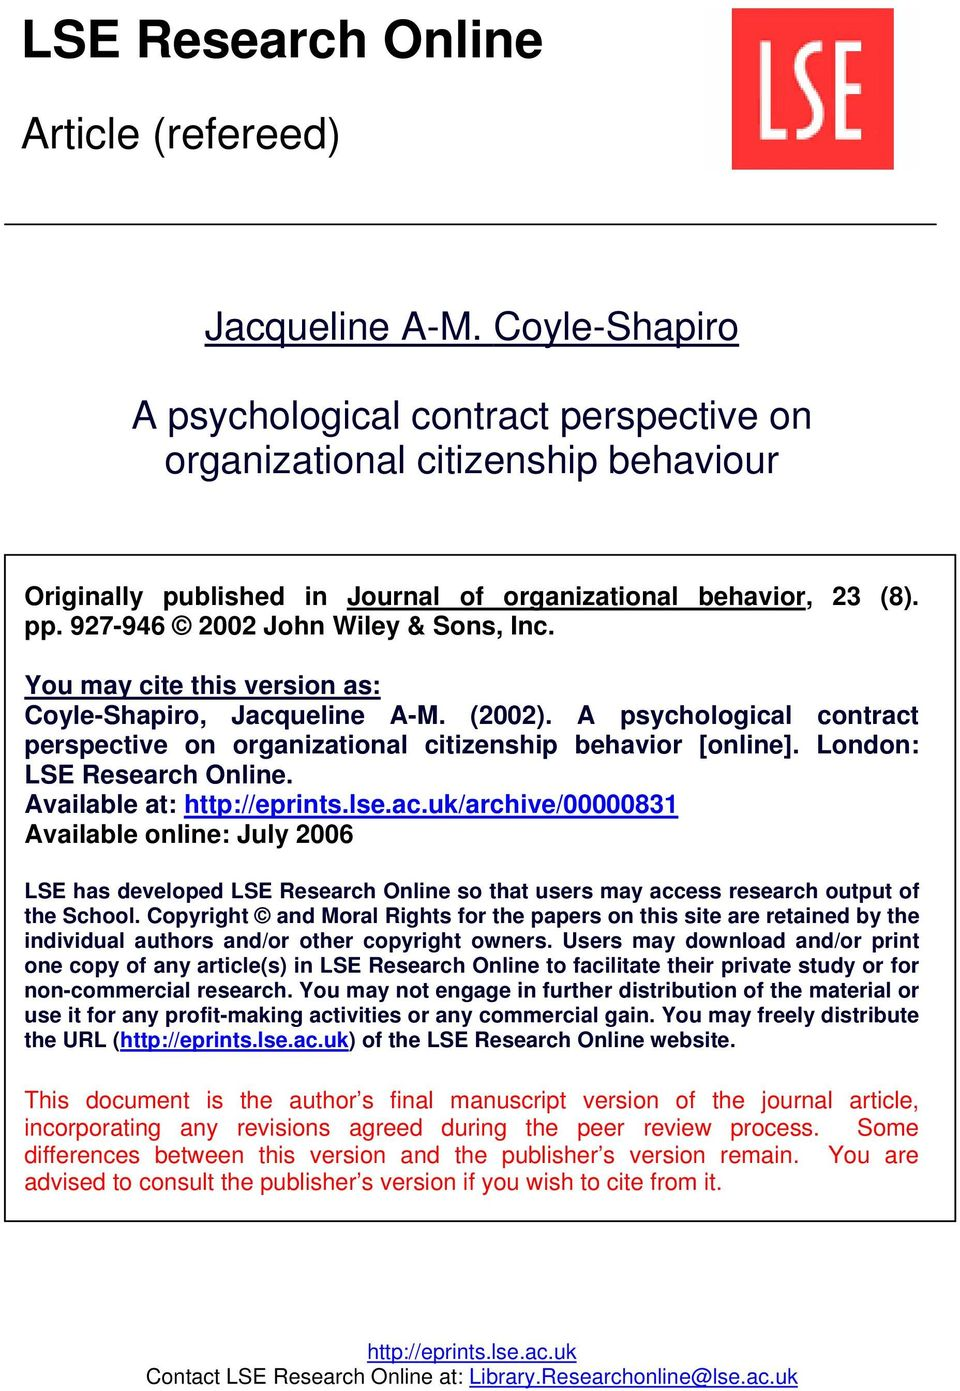 You may cite this version as: Coyle-Shapiro, Jacqueline A-M. (2002). A psychological contract perspective on organizational citizenship behavior [online]. London: LSE Research Online.